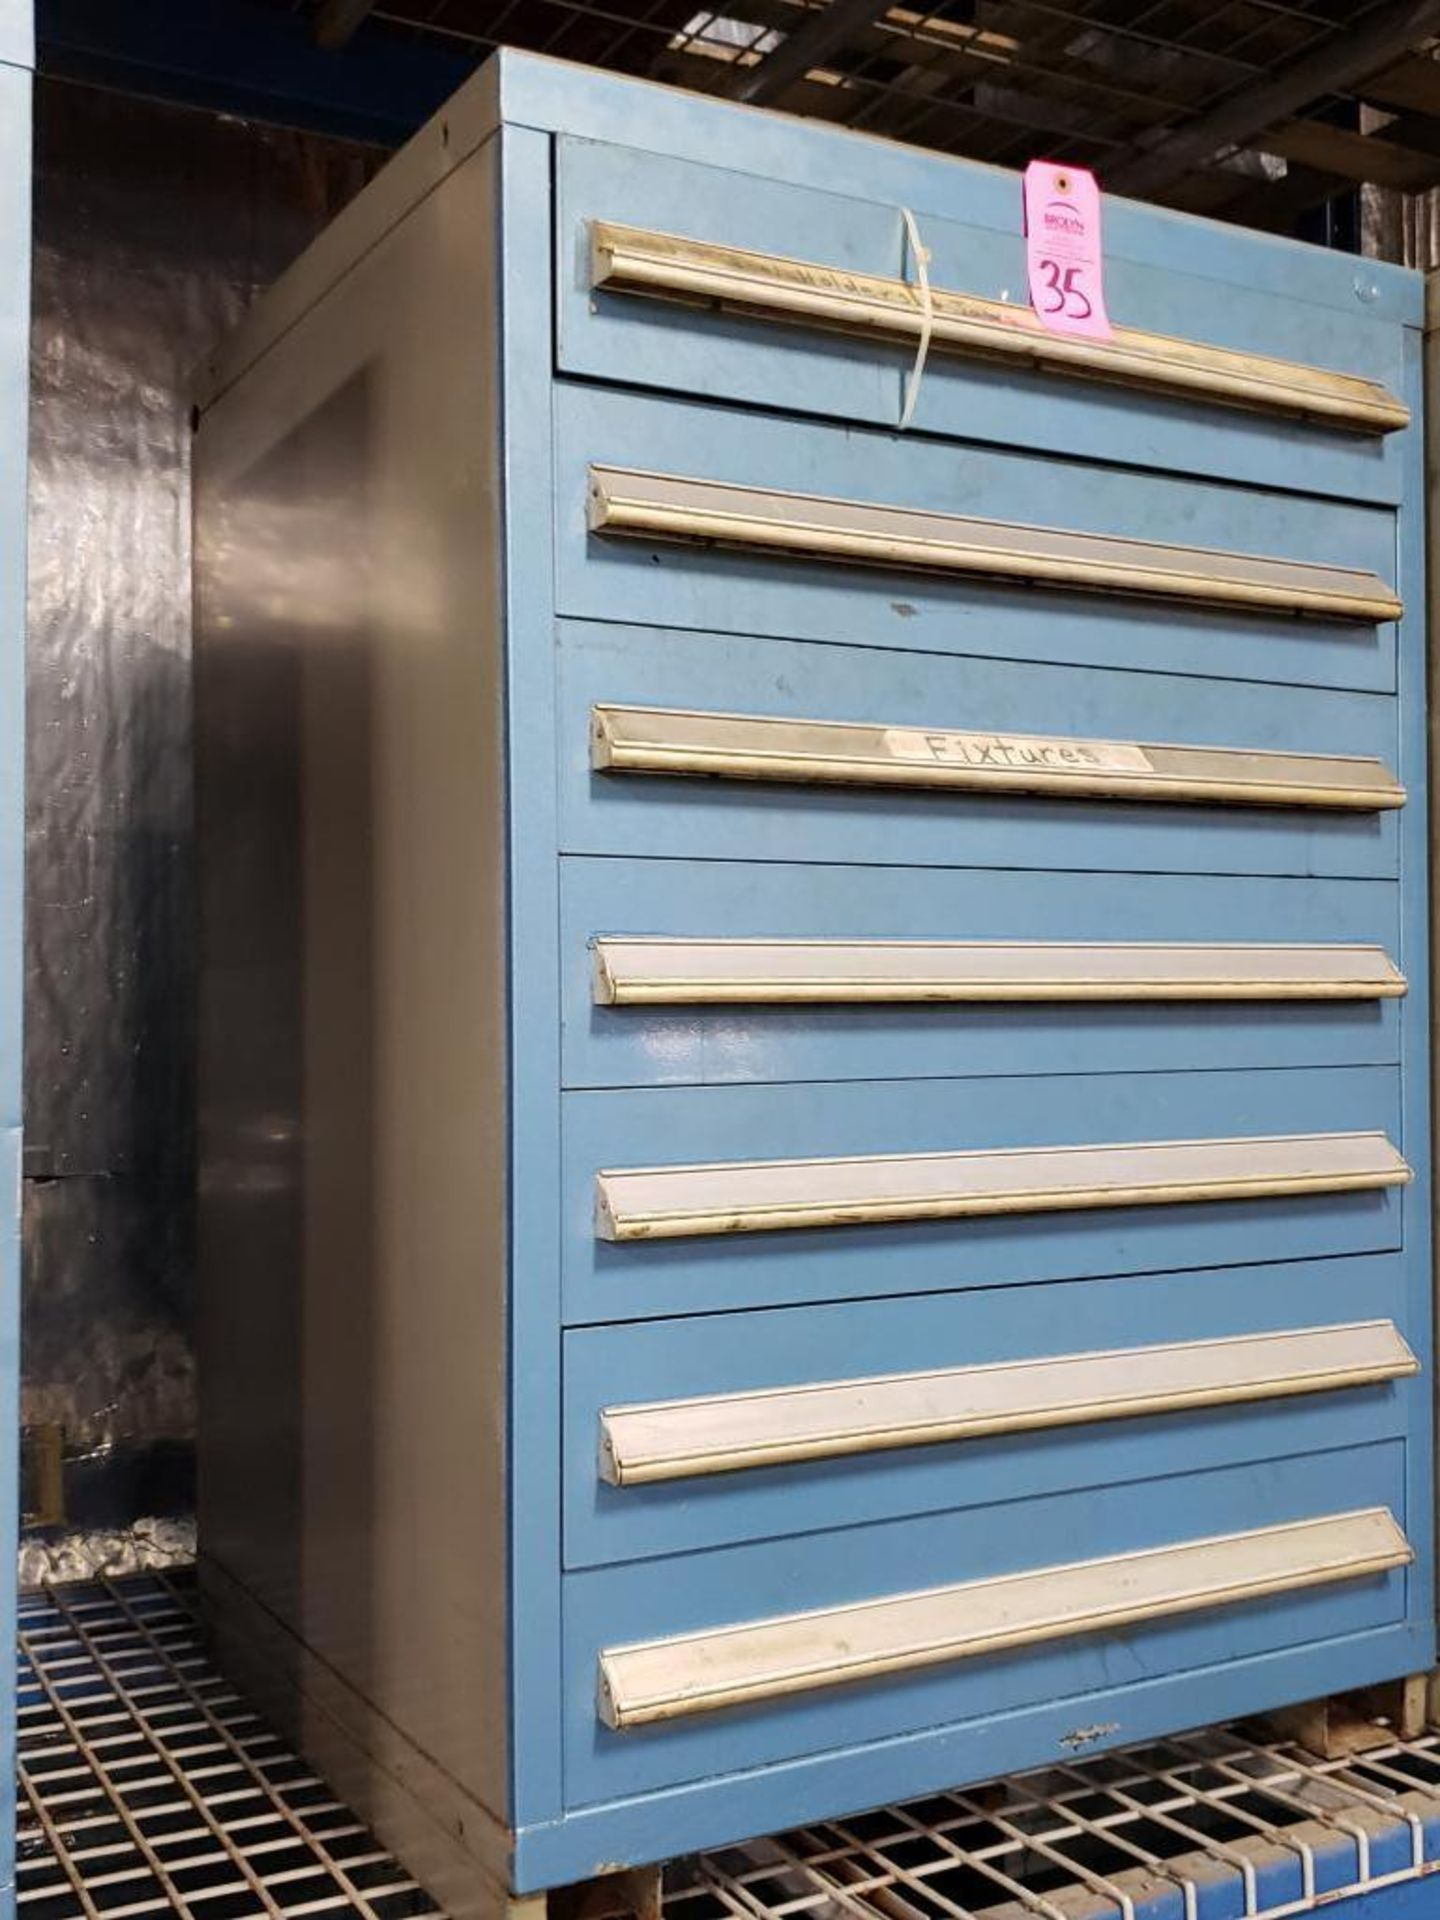 Lot 35 - 7 drawer Stanley Vidmar tool cabinet. Overall dimensions 44Tx30Wx28D.